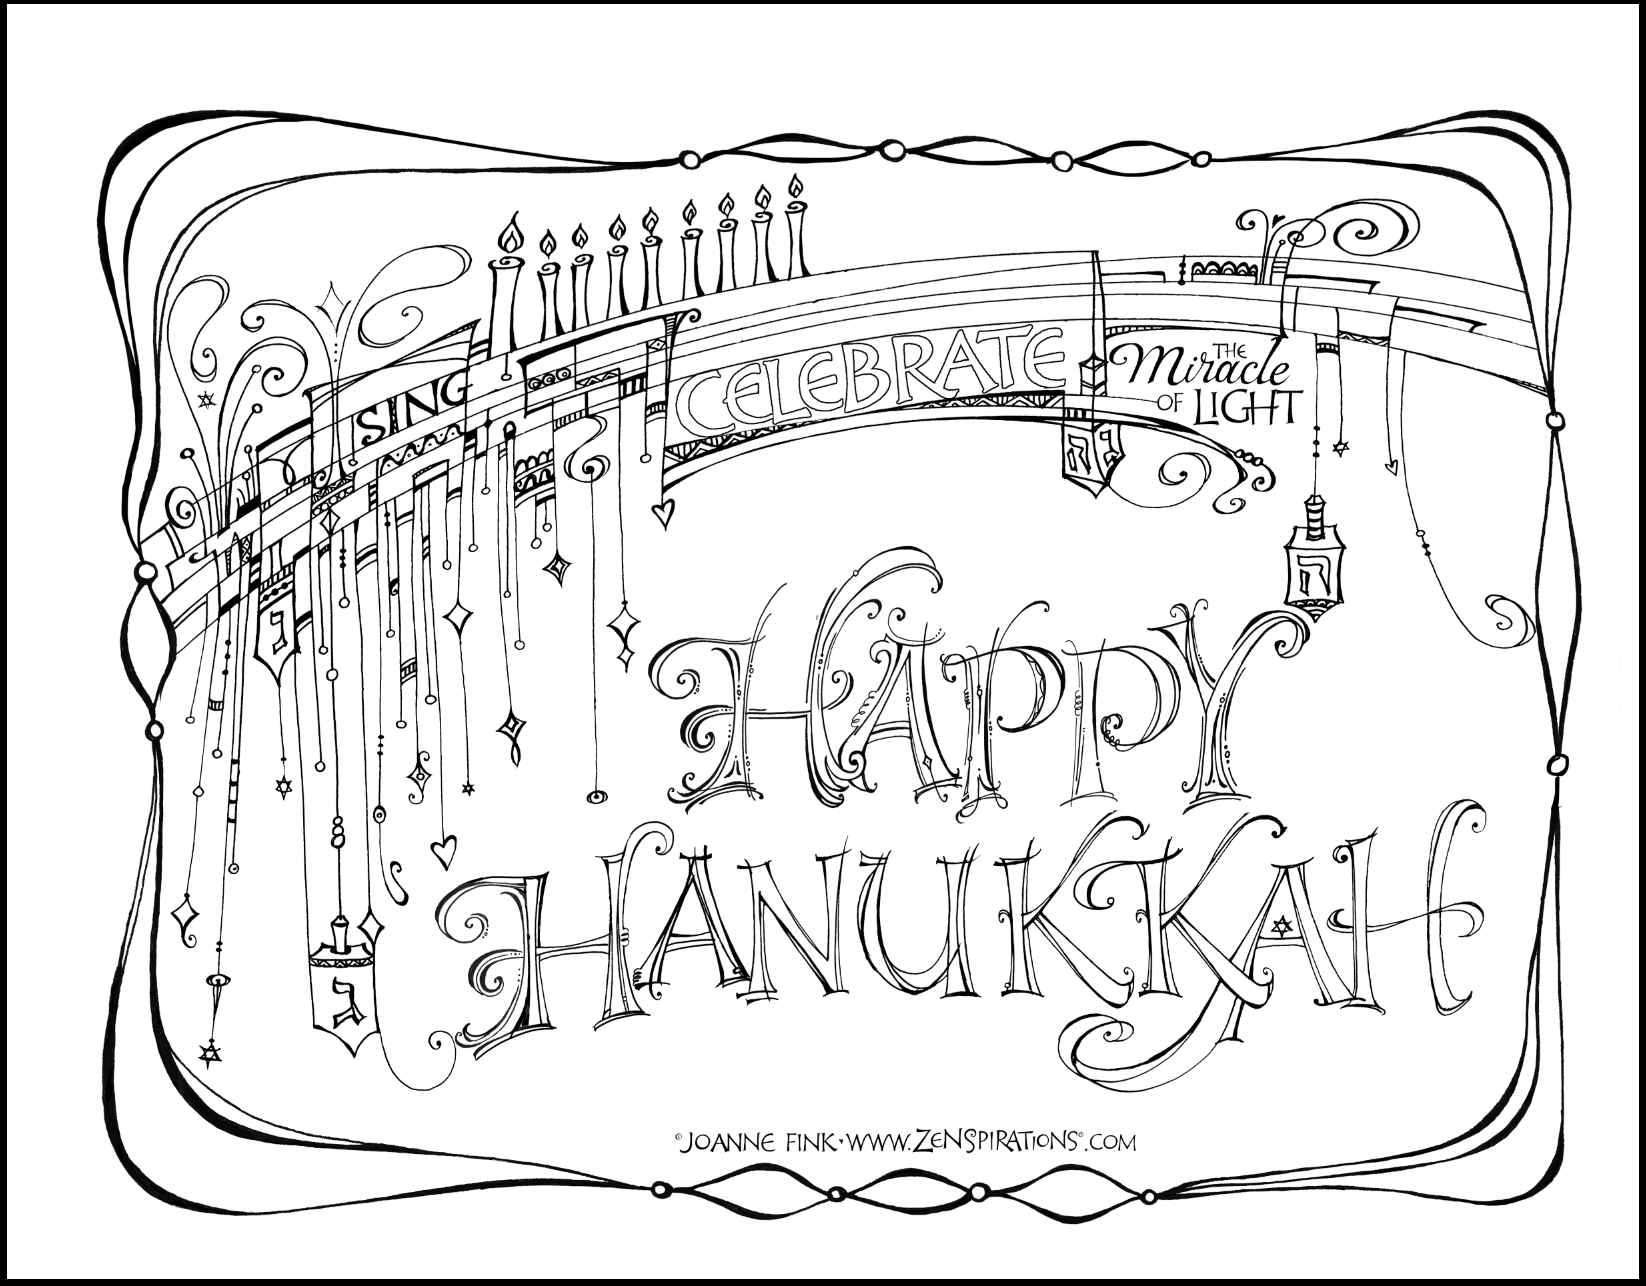 FREE DOWNLOADABLE Zenspirations - Hanukkah Create, Color, Pattern, Play page on this week's Zenspirations BLOG